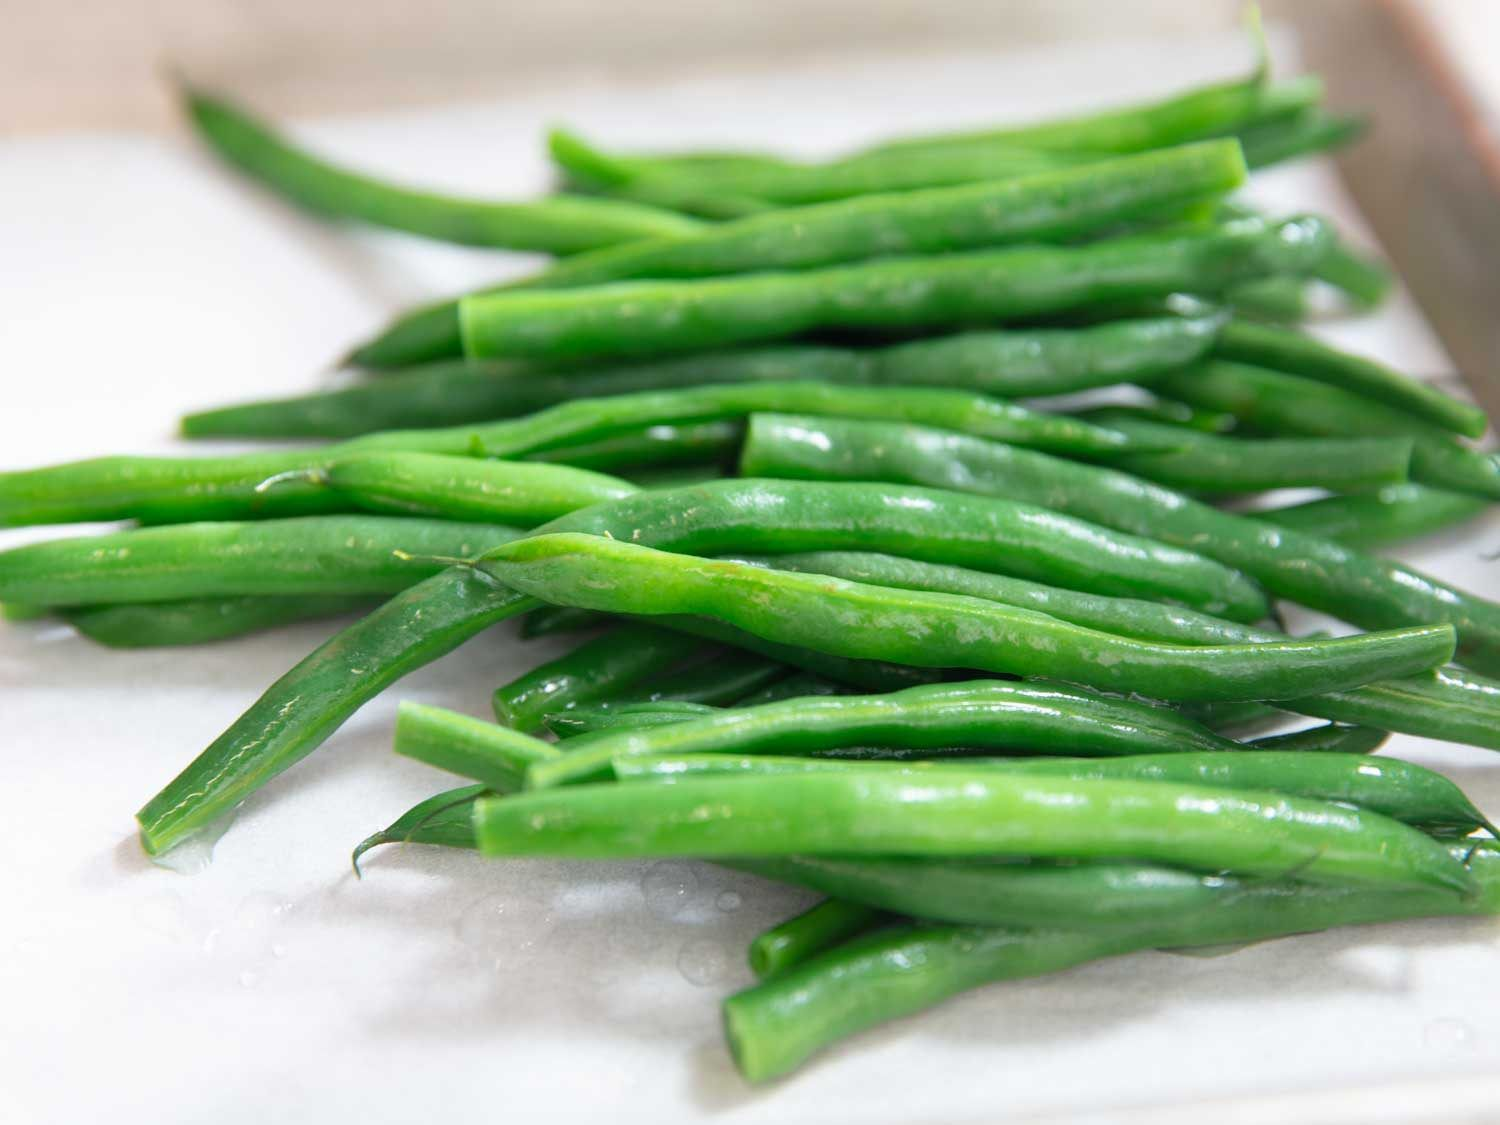 Closeup of blanched whole green beans.